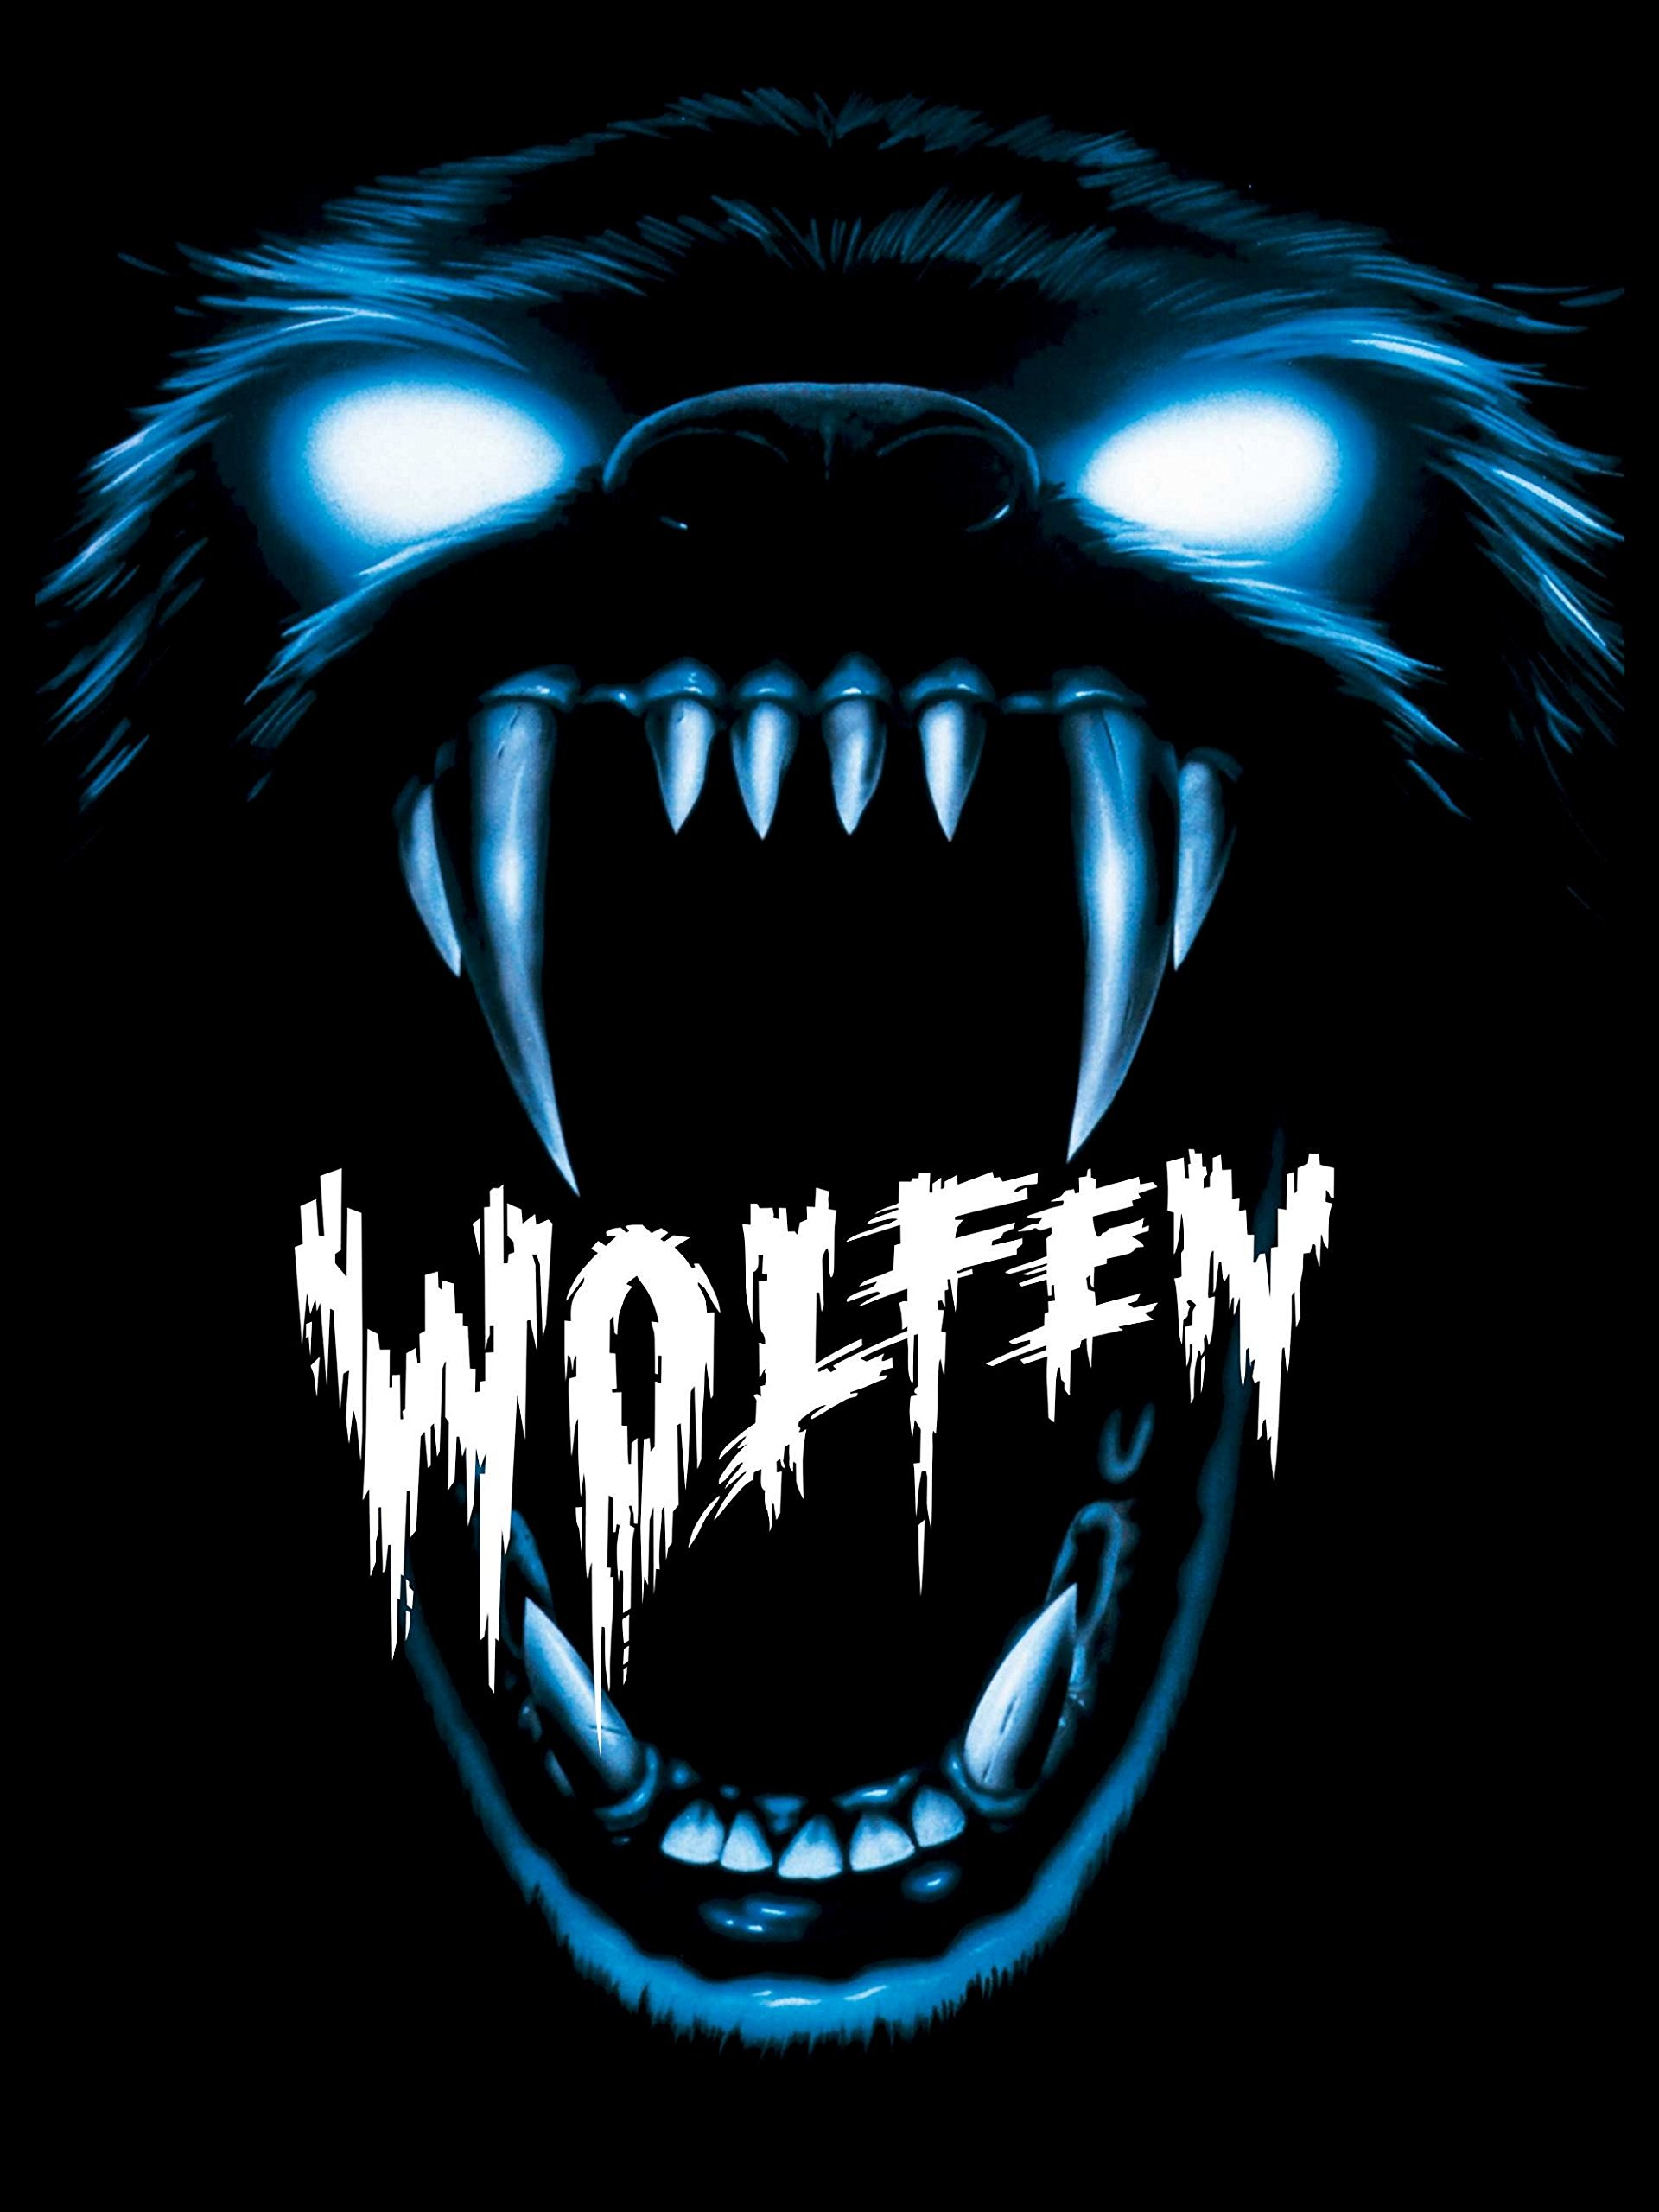 Wolfen directed by Michael Wadleigh